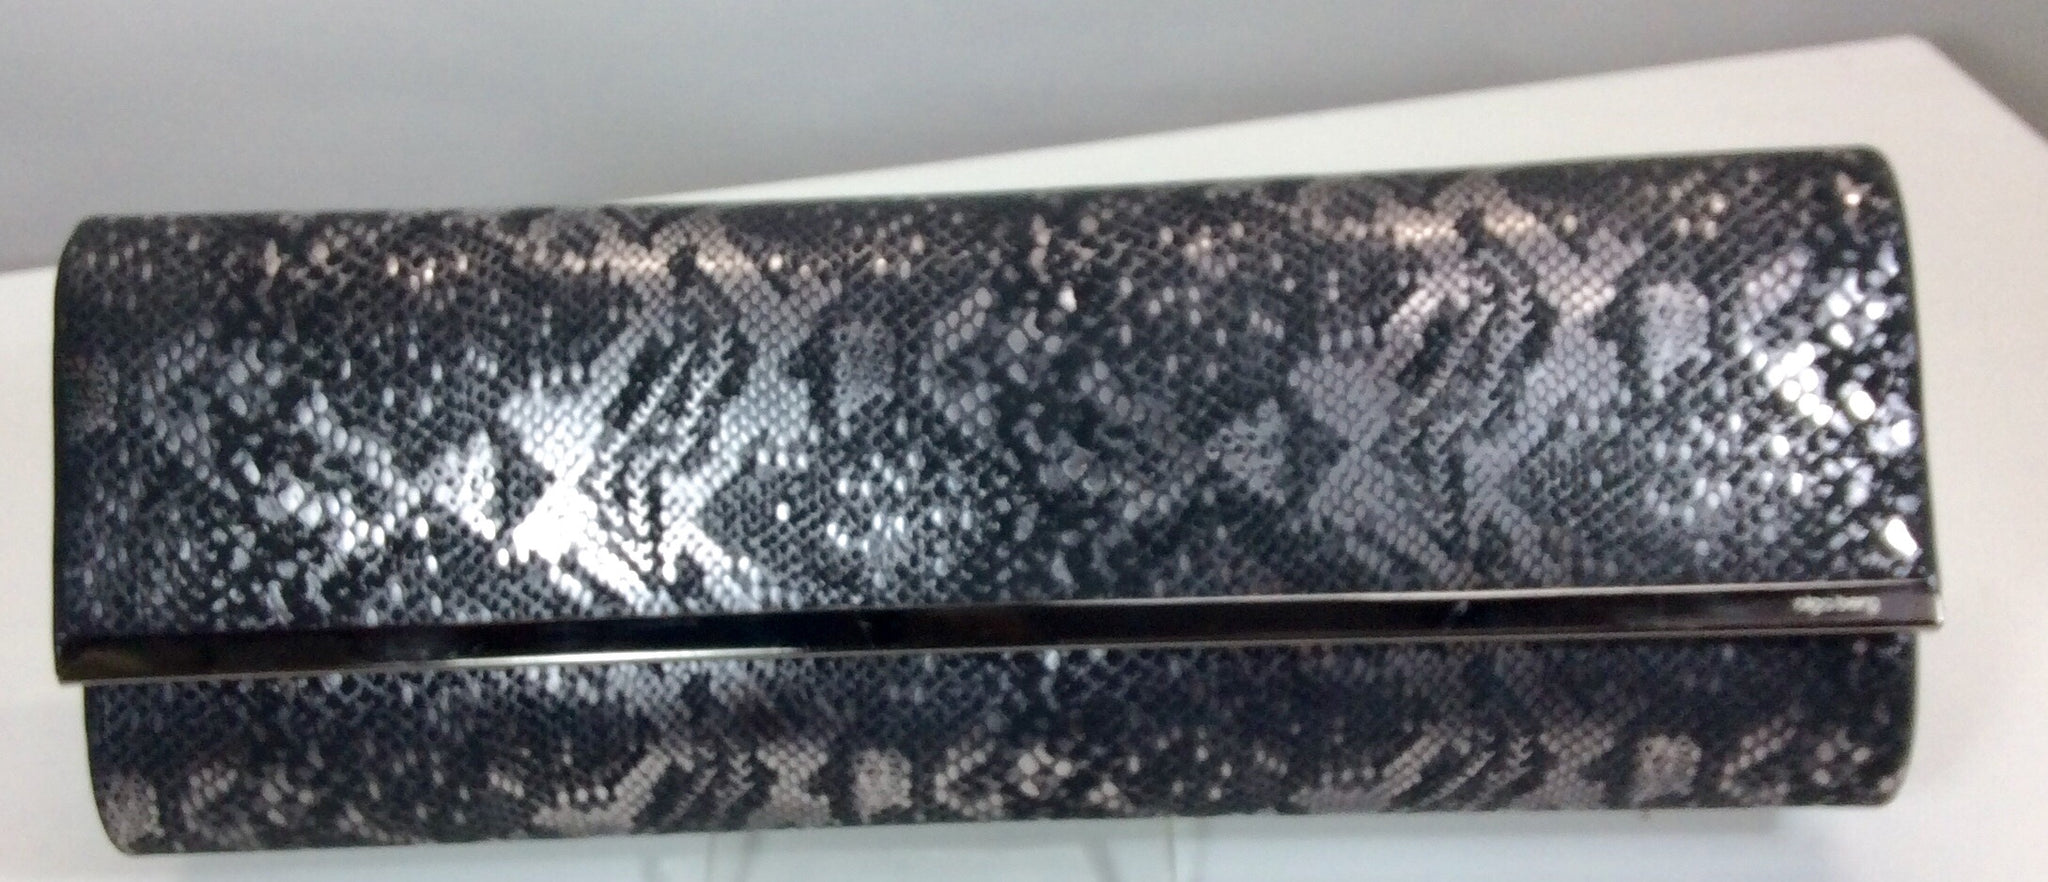 Elongated silver and black snakeskin evening bag